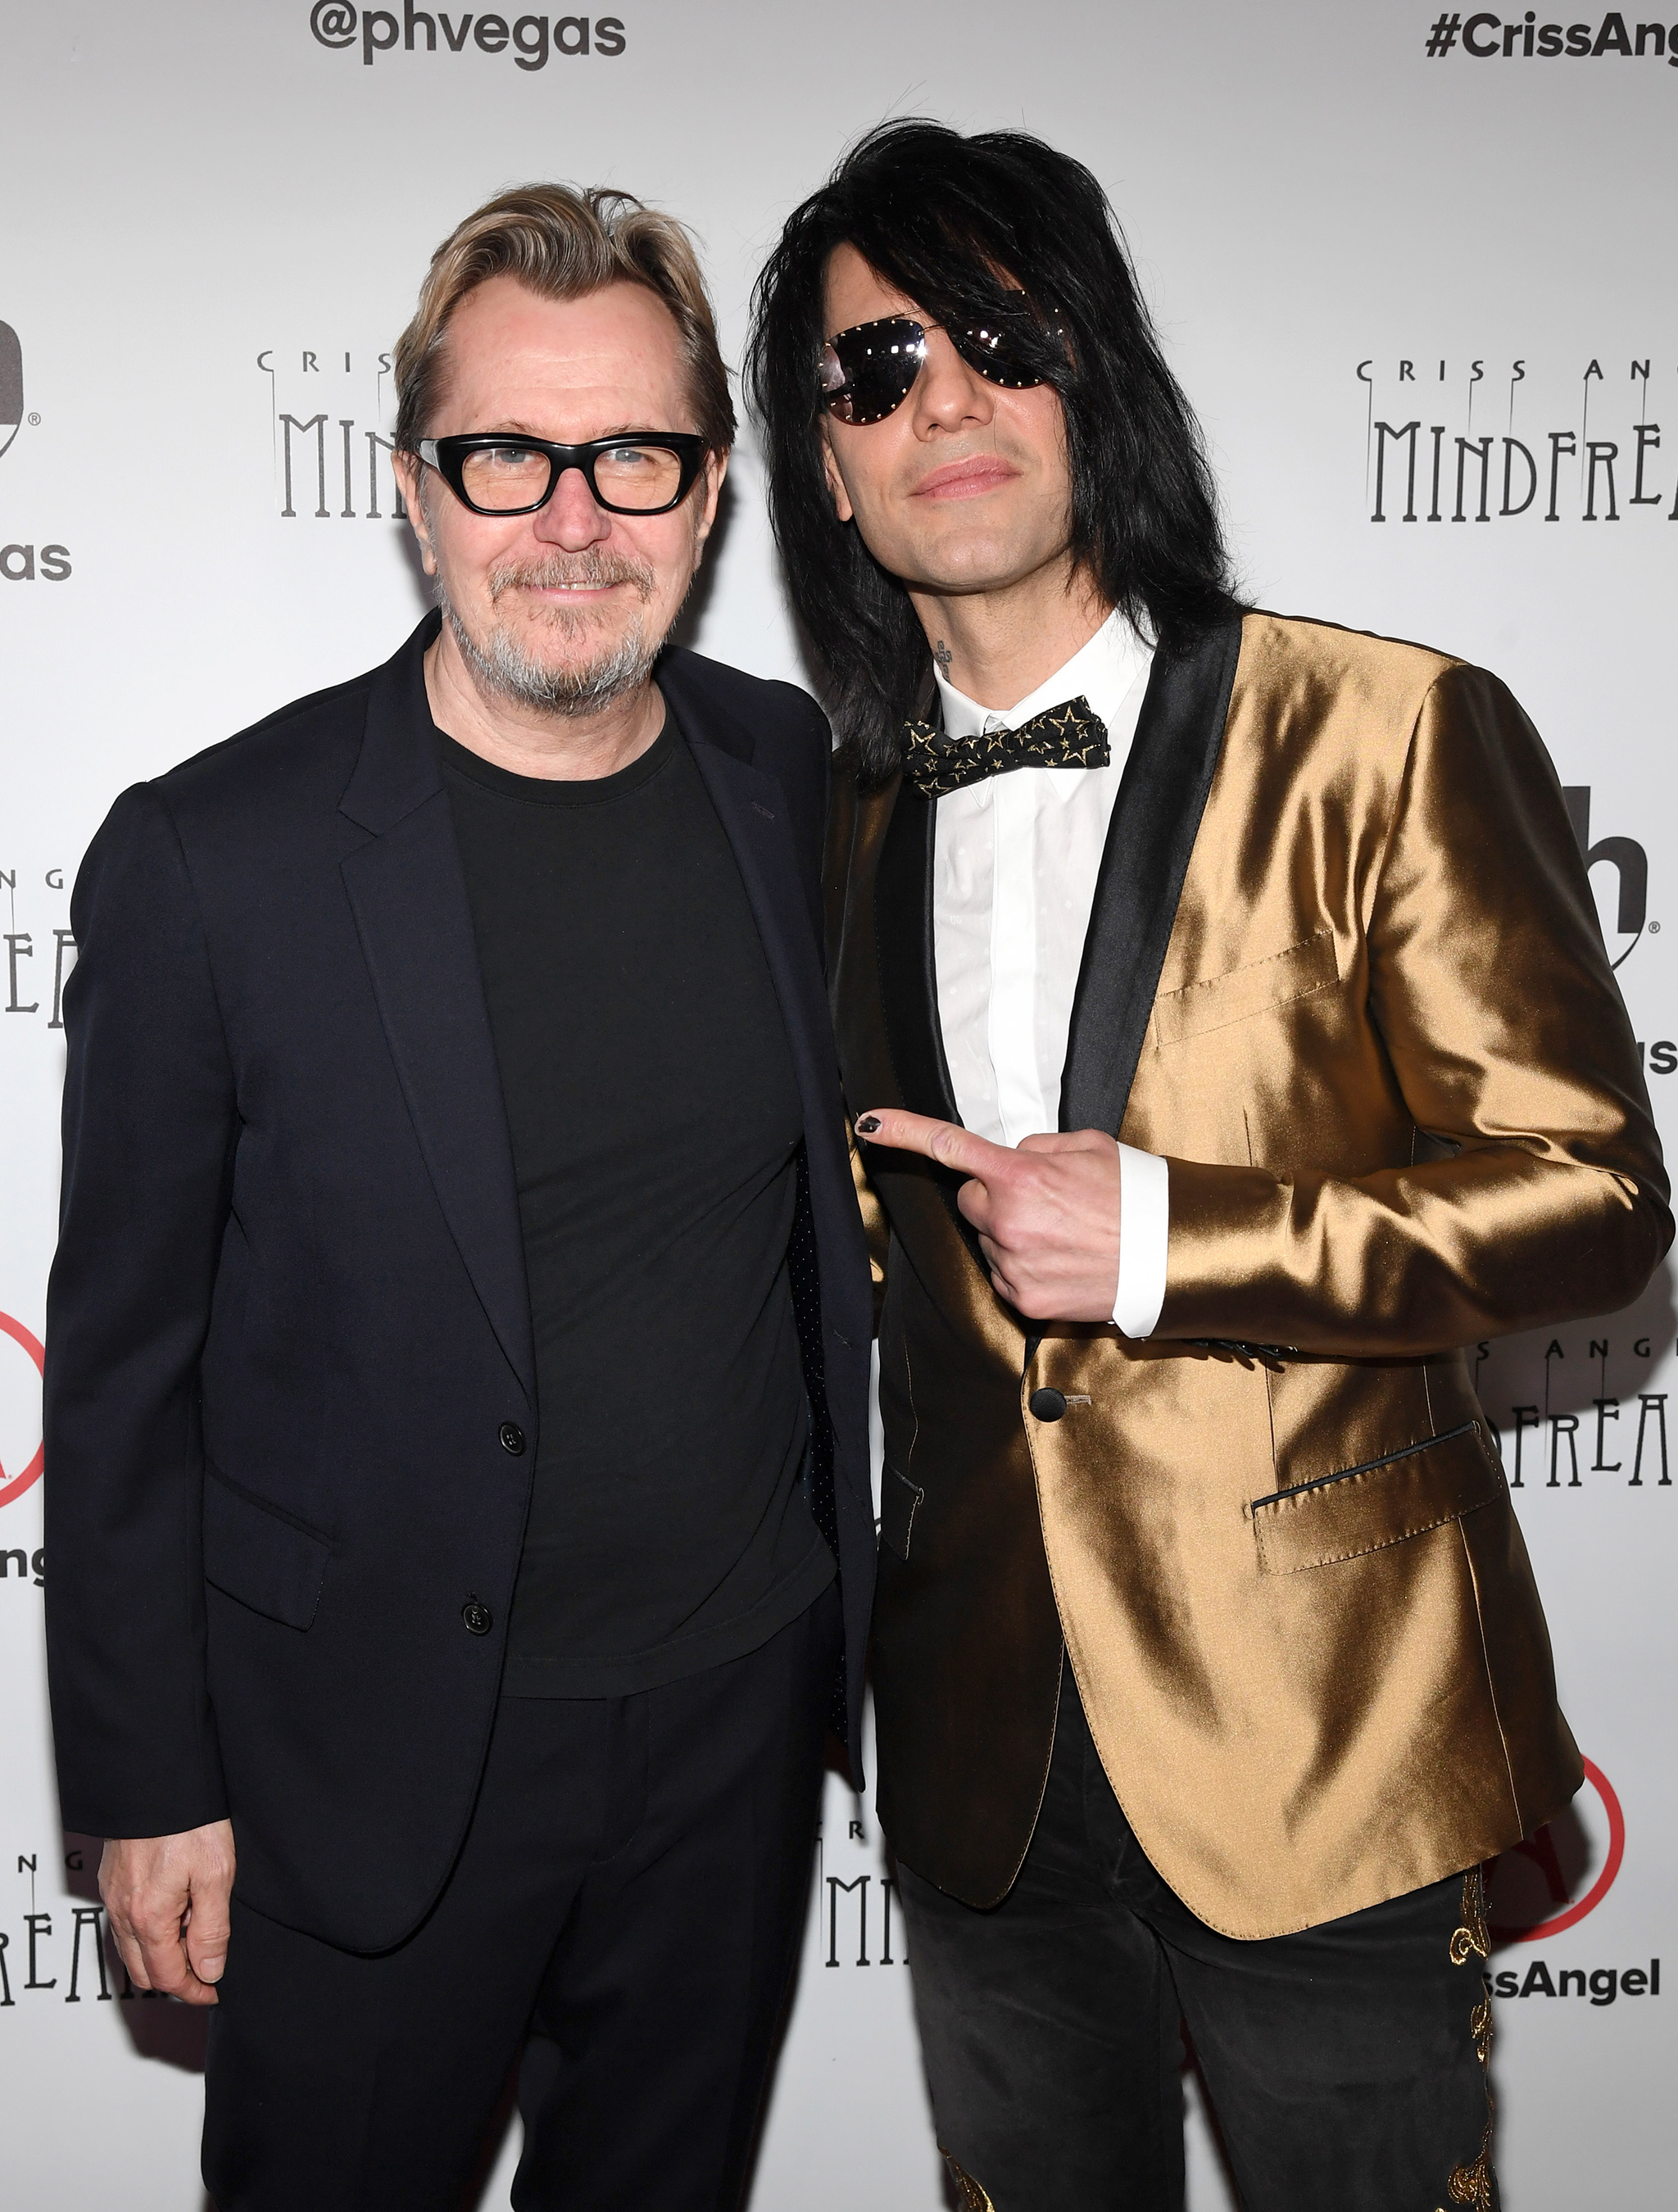 Actor Gary Oldman (L) and illusionist Criss Angel attend the grand opening of Criss Angel MINDFREAK at Planet Hollywood Resort & Casino on January 19, 2019 in Las Vegas